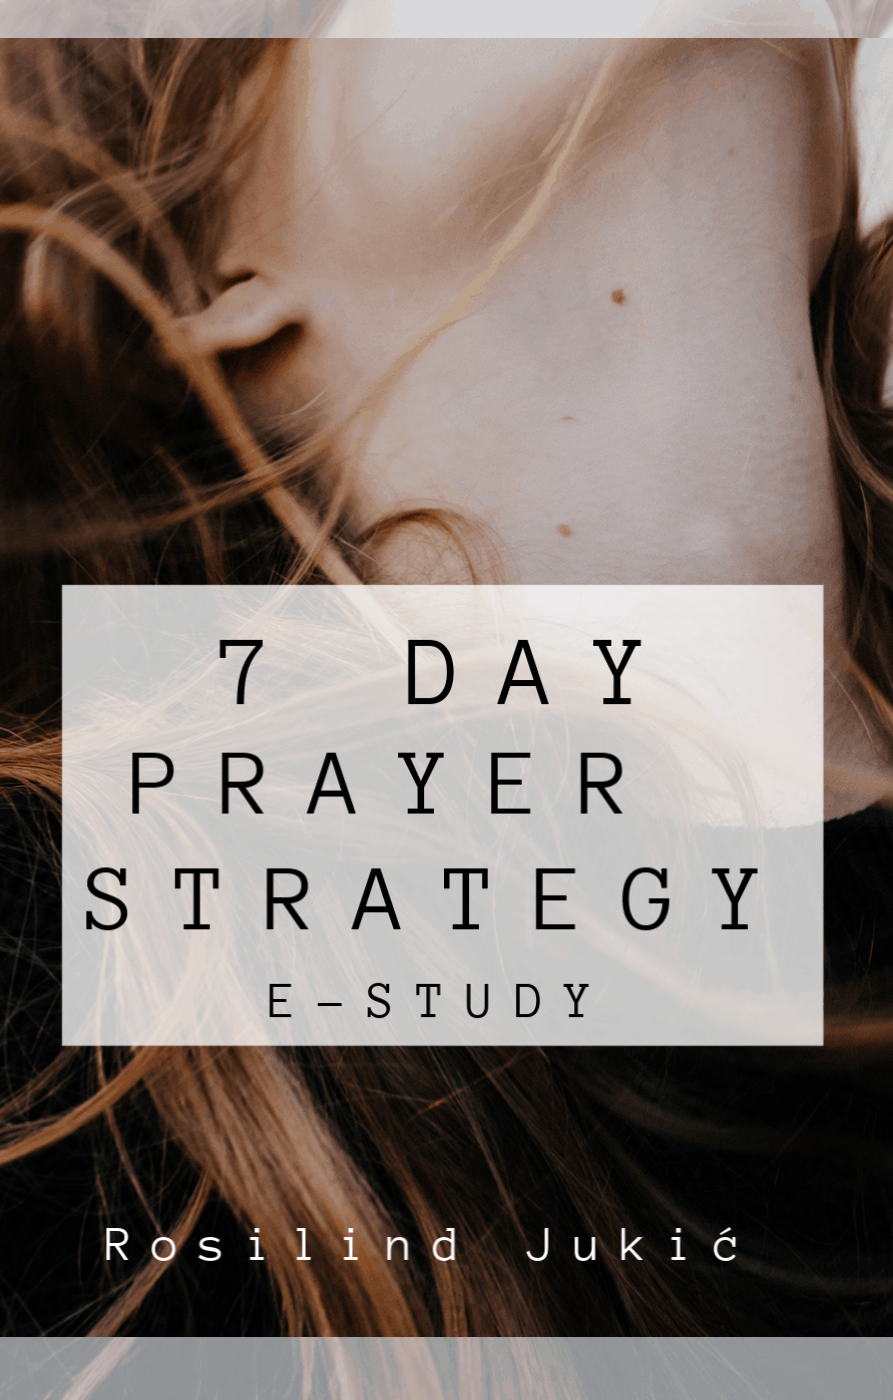 Join me for the 7 Day Payer Strategy e-study and learn to pray effective, fervent prayers that avail much! #alittlerandr #prayer #prayerstrategy #warroom via @alittlerandr